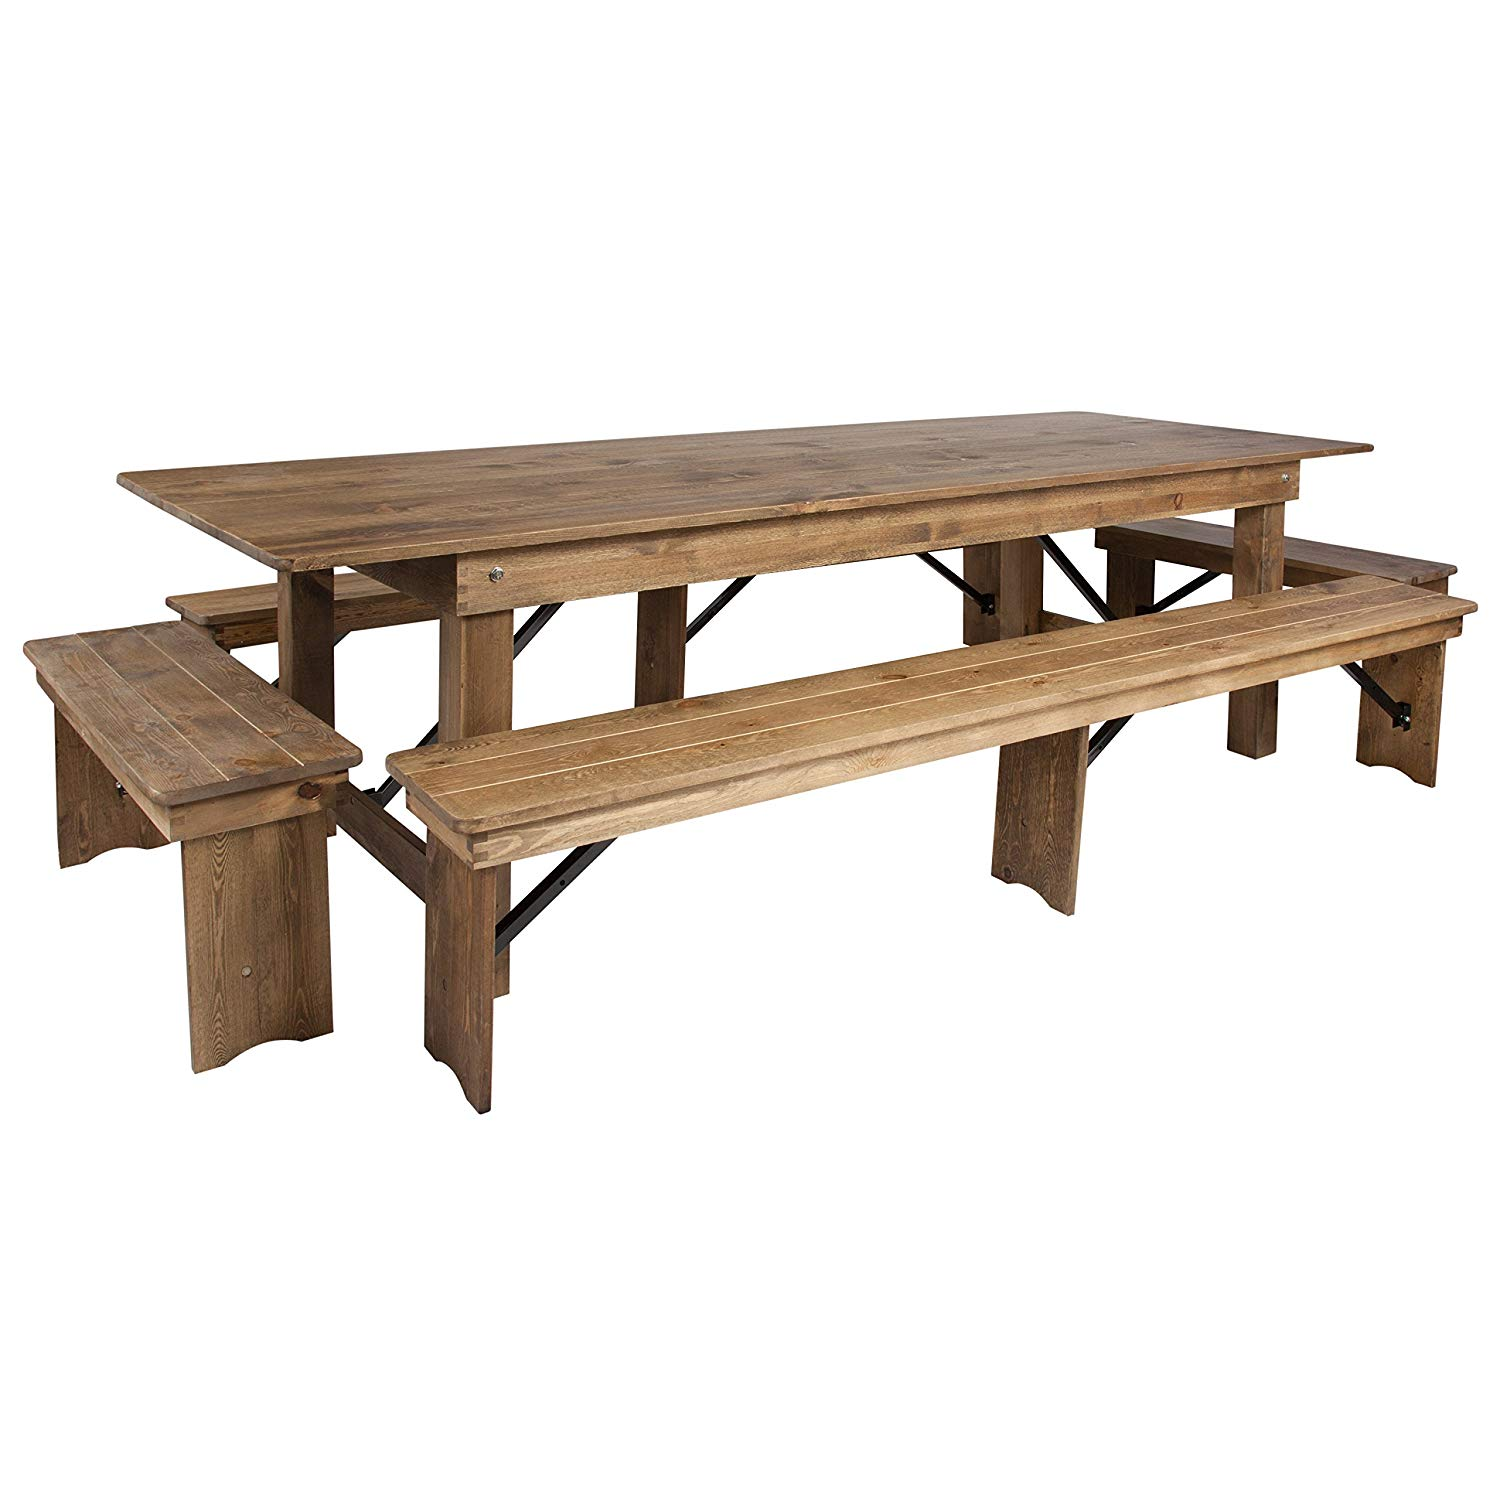 Farm Table With Bench And Chairs: S Rustic Farm Table Set 8ft X 40in With 6 Benches